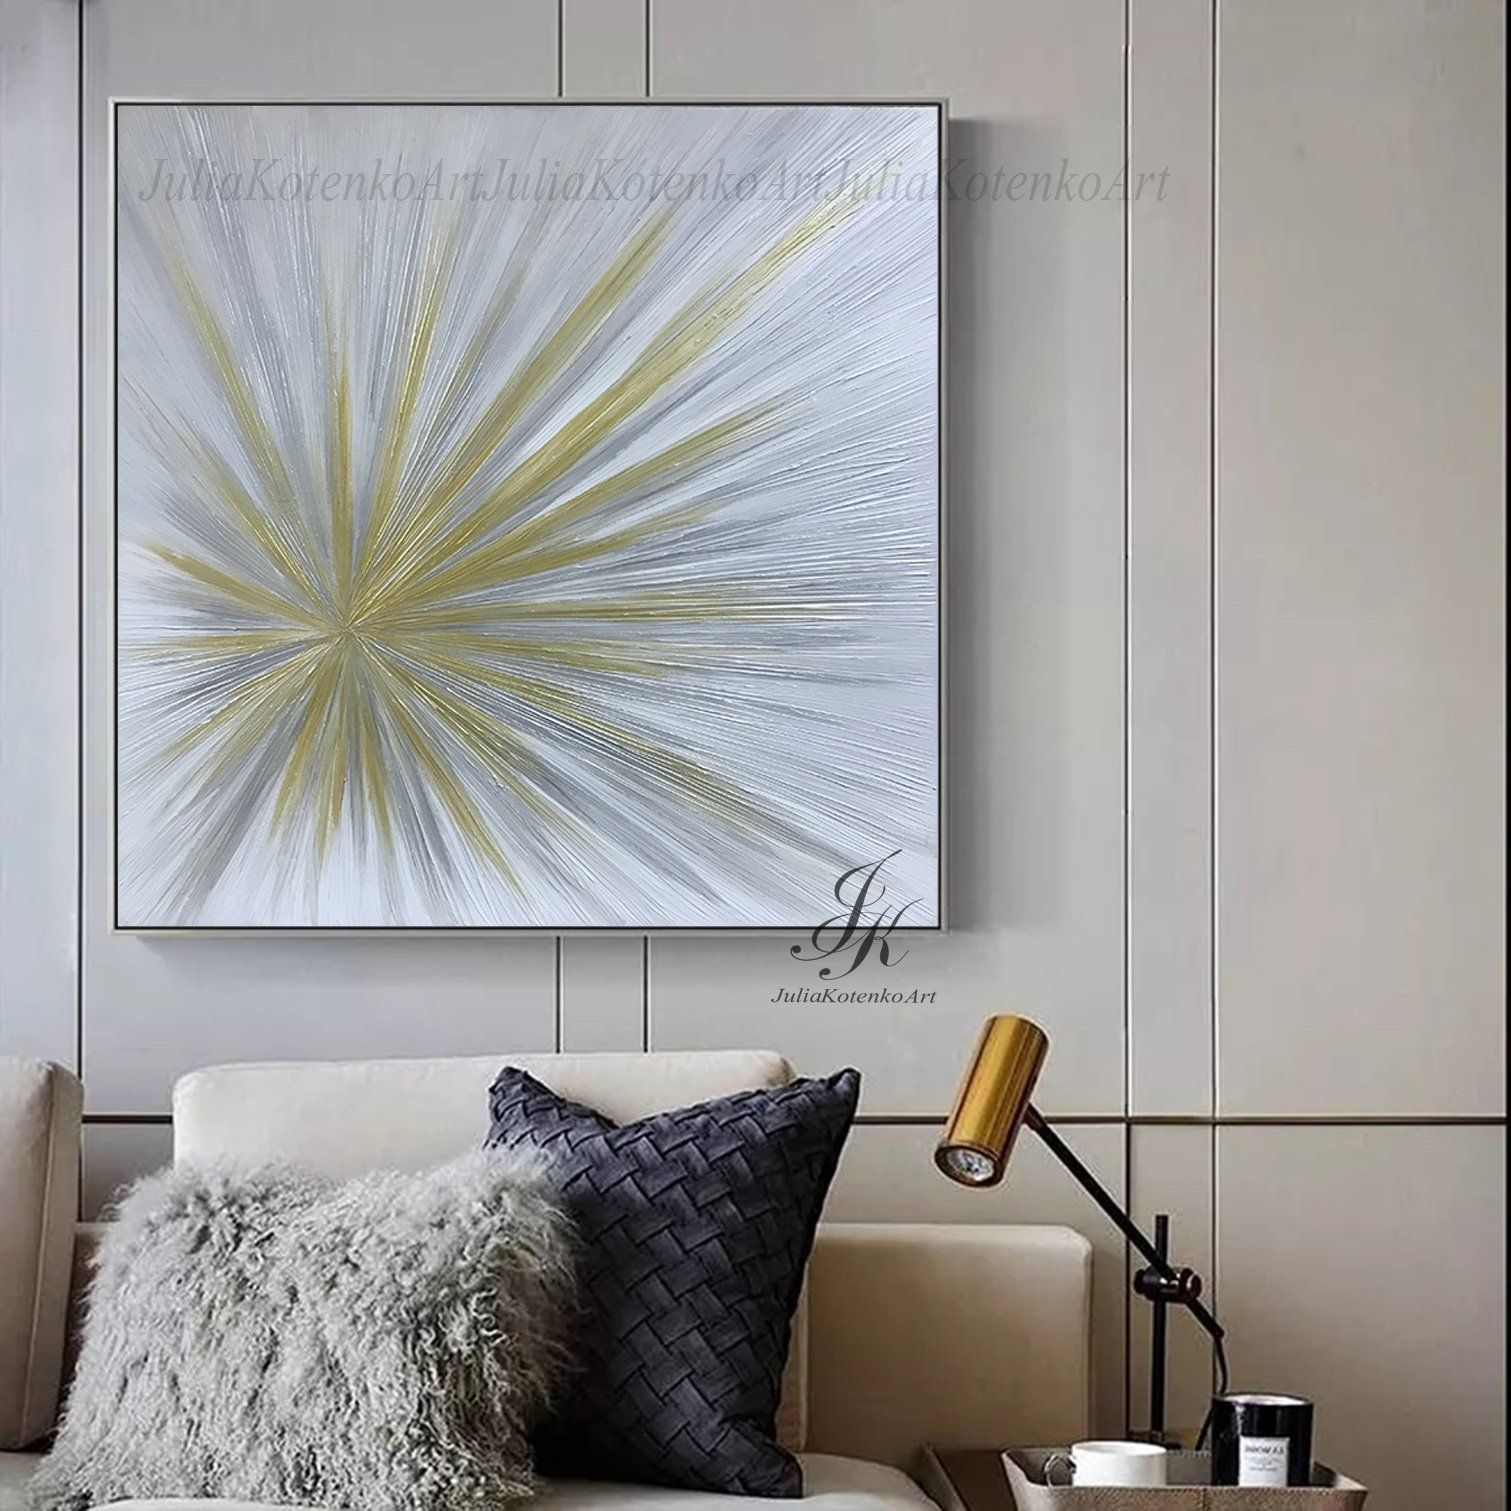 Large Canvas Painting Texture Wall Art Gold Painting Silver Etsy Textured Wall Art Large Canvas Painting Large Abstract Painting